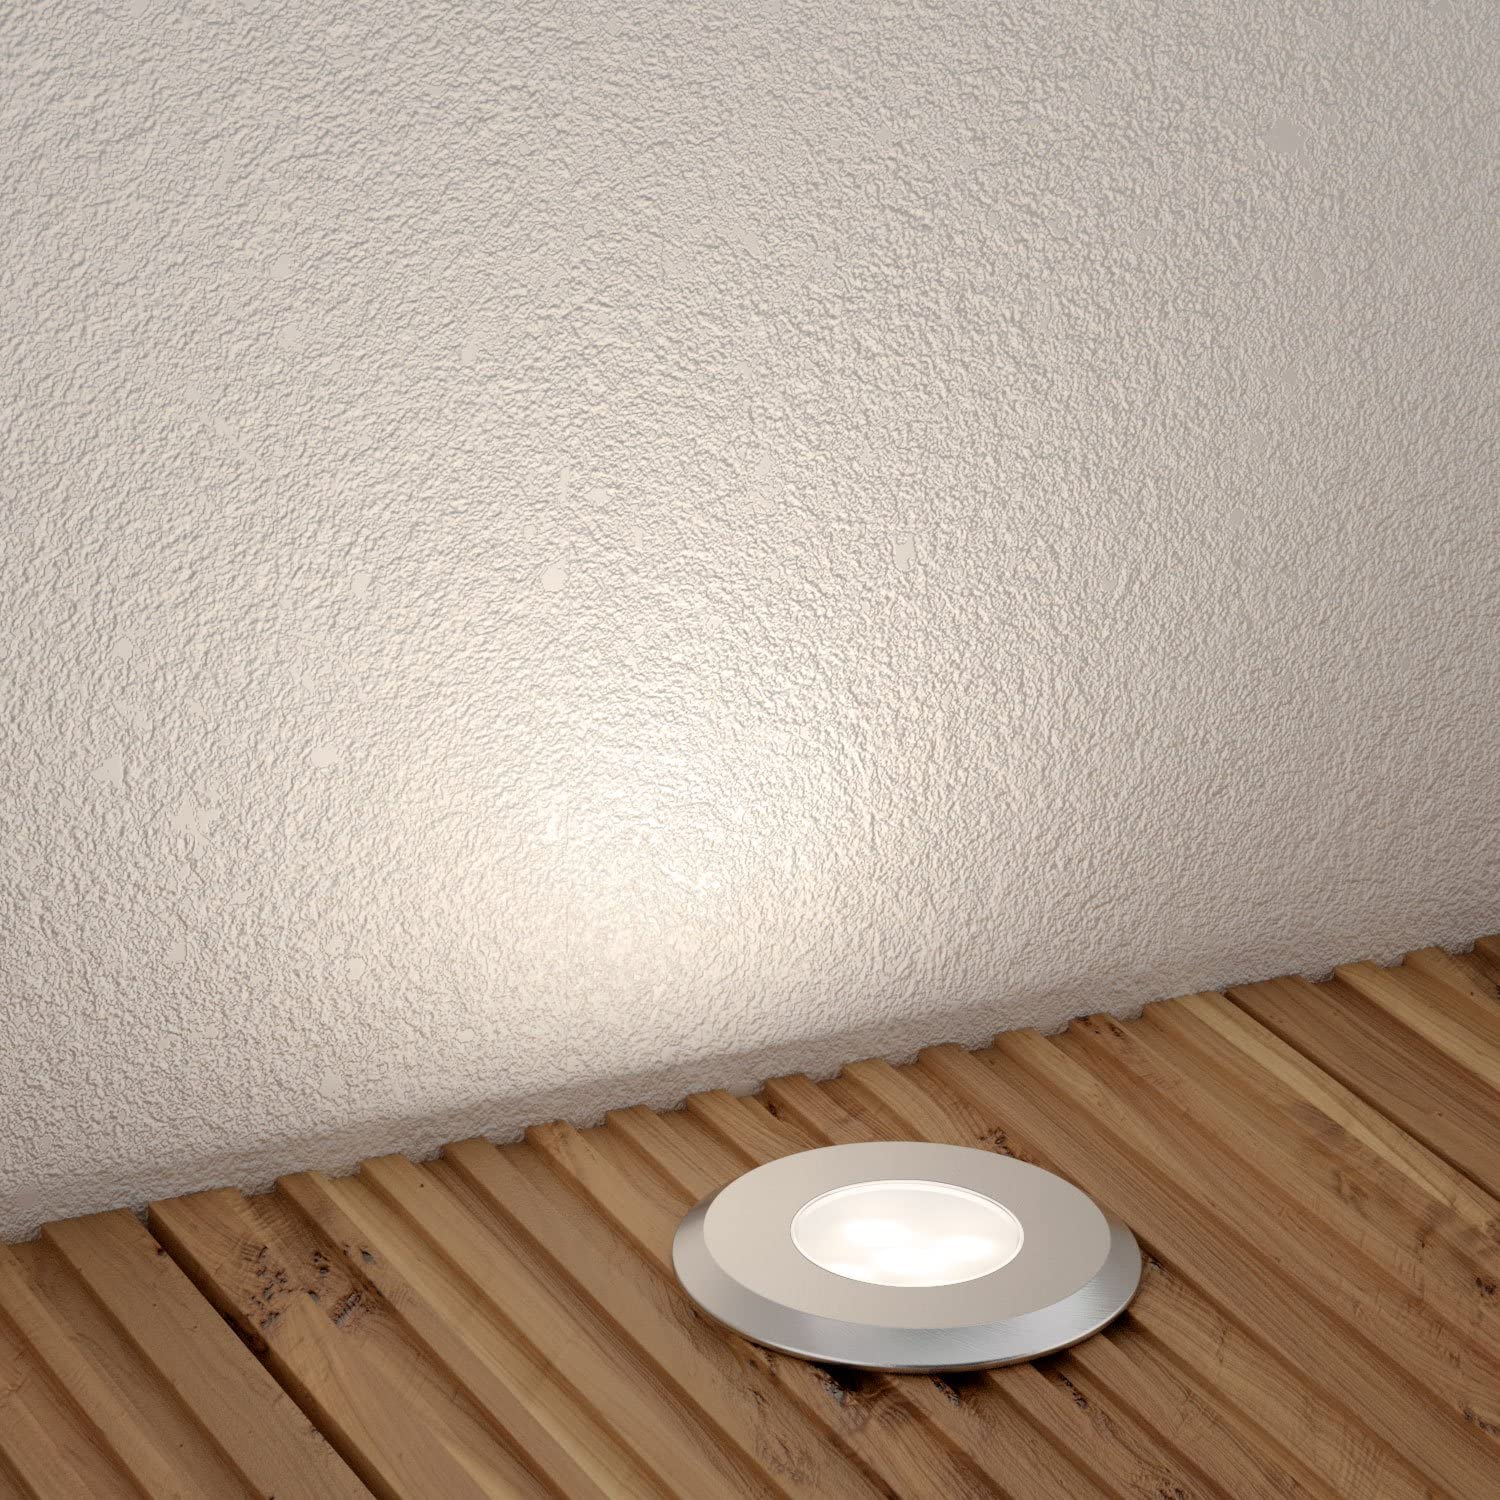 Parlat LED Recessed Ground Light AGENA For Outdoor, Warm White, 7lm, IP65, 230V, 60mm Ø, 10 Pcs 1 light